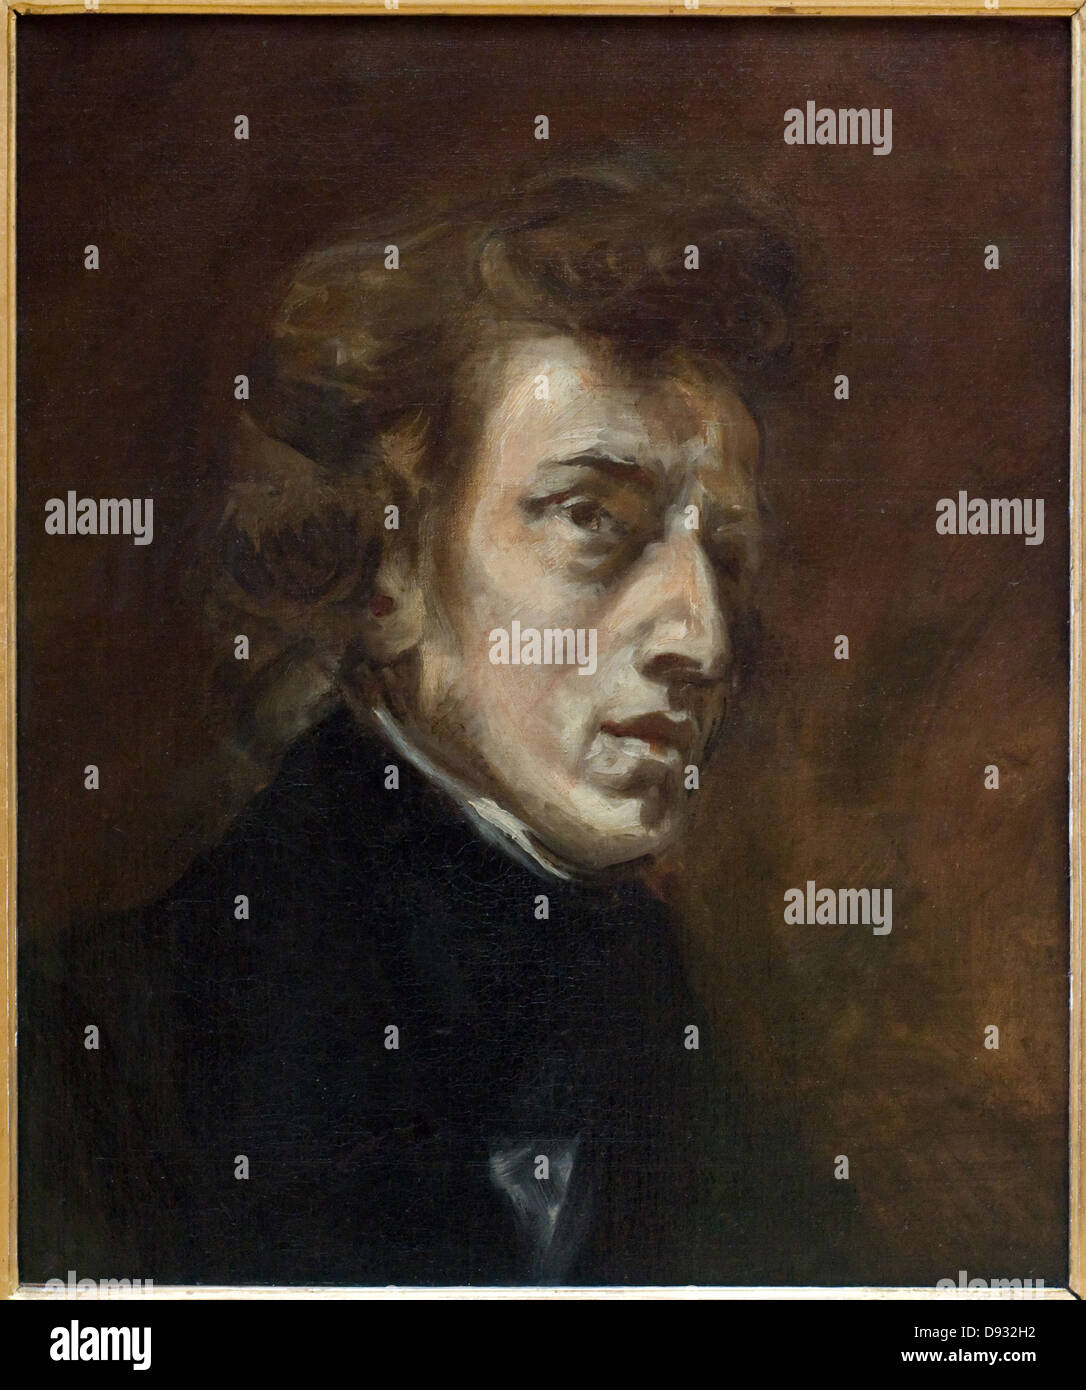 Eugene Delacroix Frederic Chopin 1838 XIX th century French school Louvre Museum - Paris - Stock Image